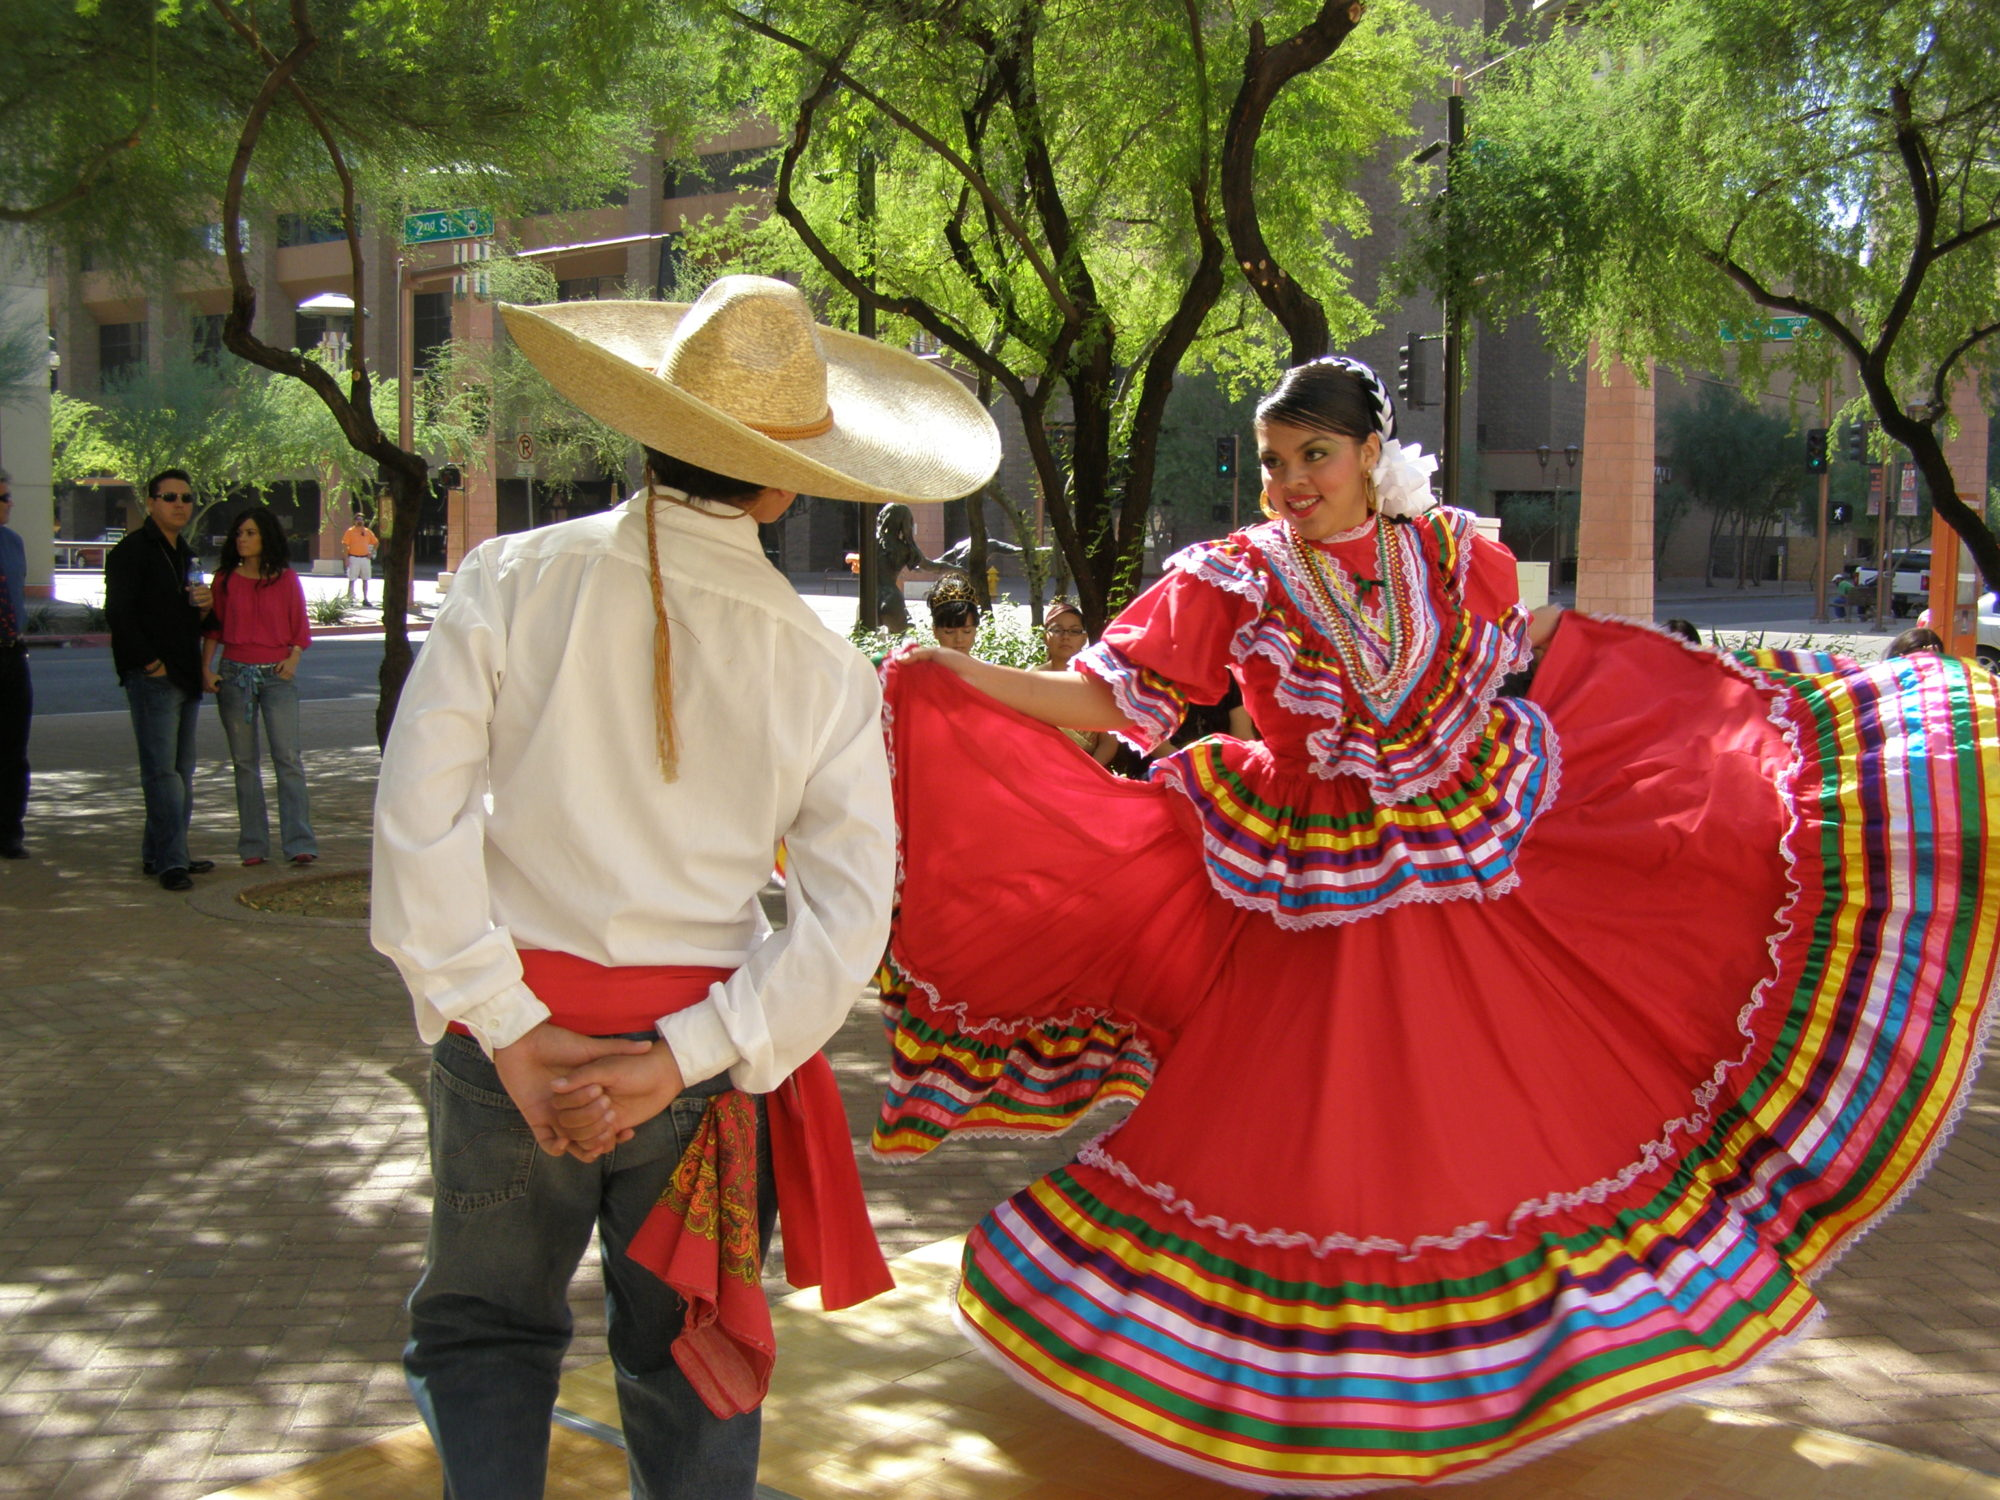 Fiestas Patrias at Traders Village on September 17, 2017